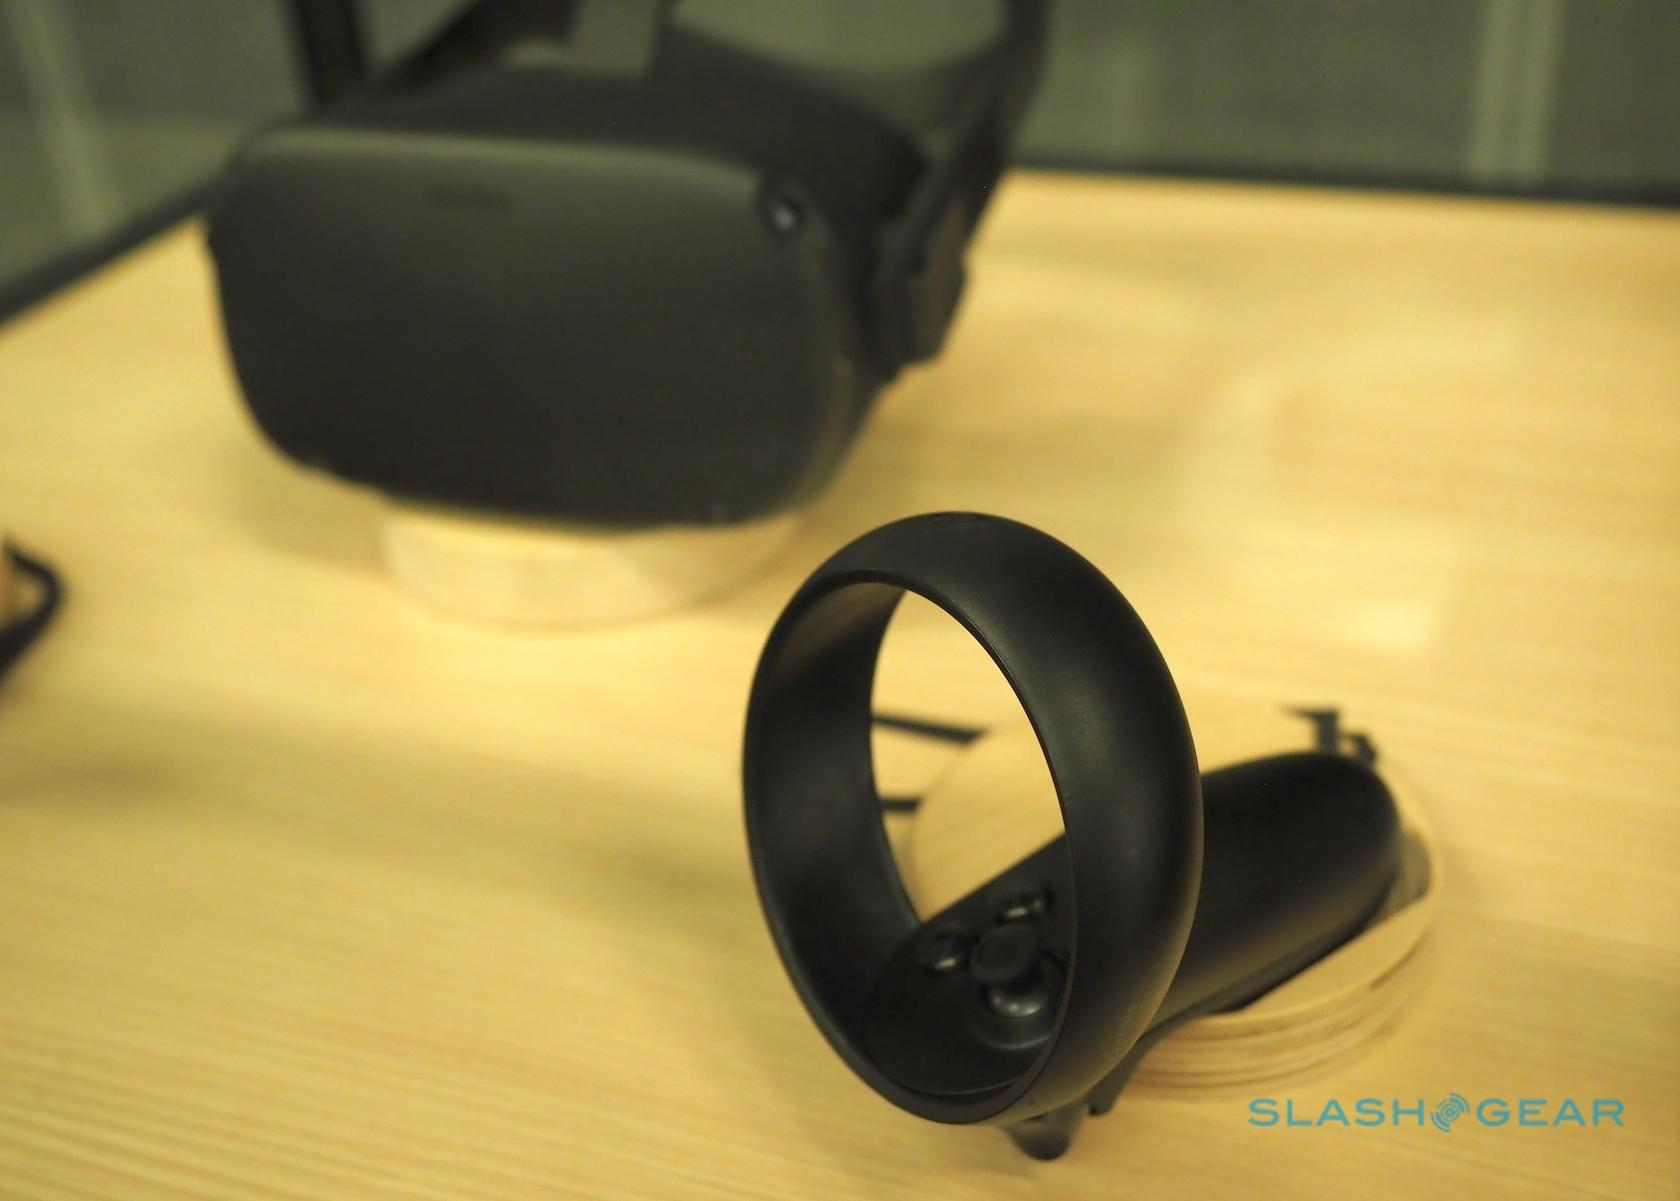 Oculus Quest hands-on: $399 VR headset cuts cords not